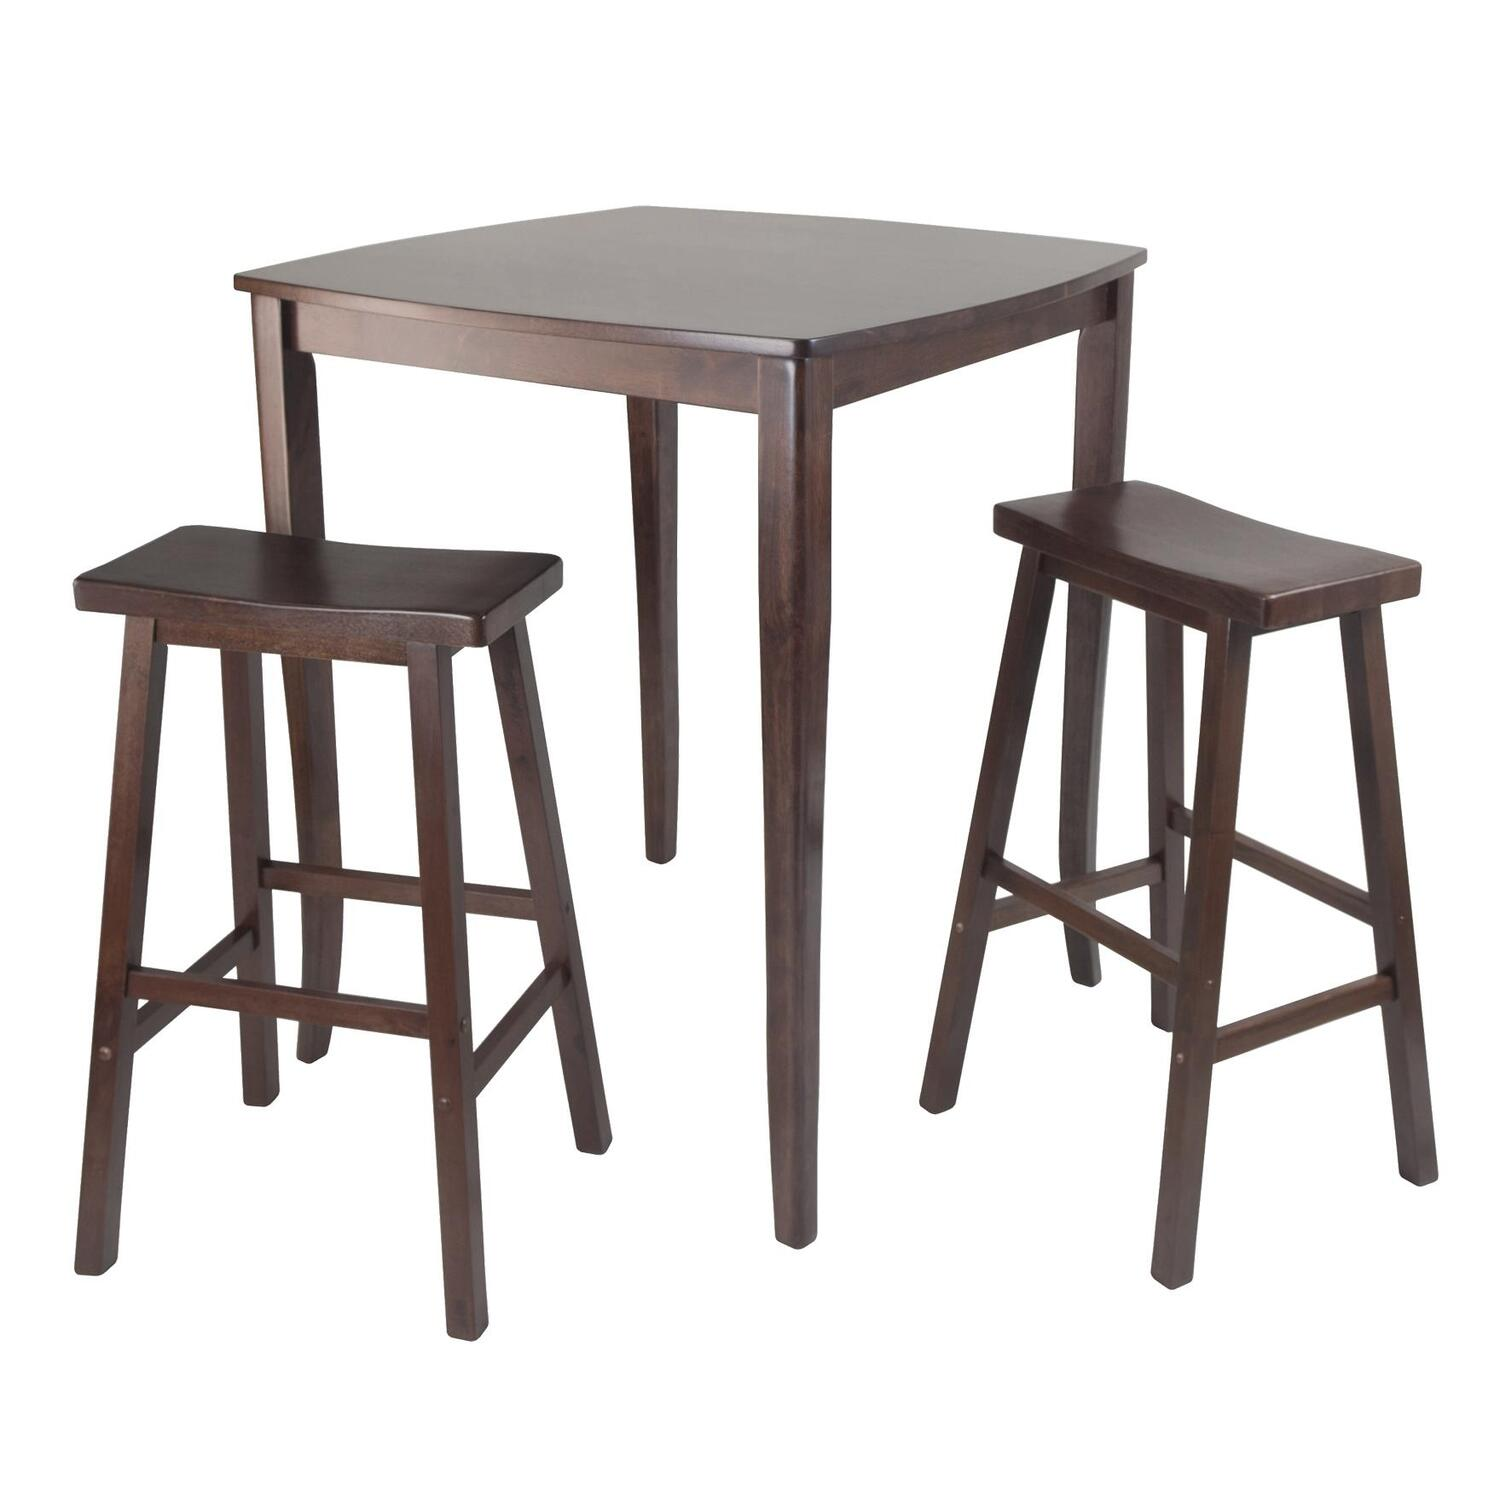 Tap To Expand. Winsome Wood 3pc Inglewood High/Pub Dining Table ...